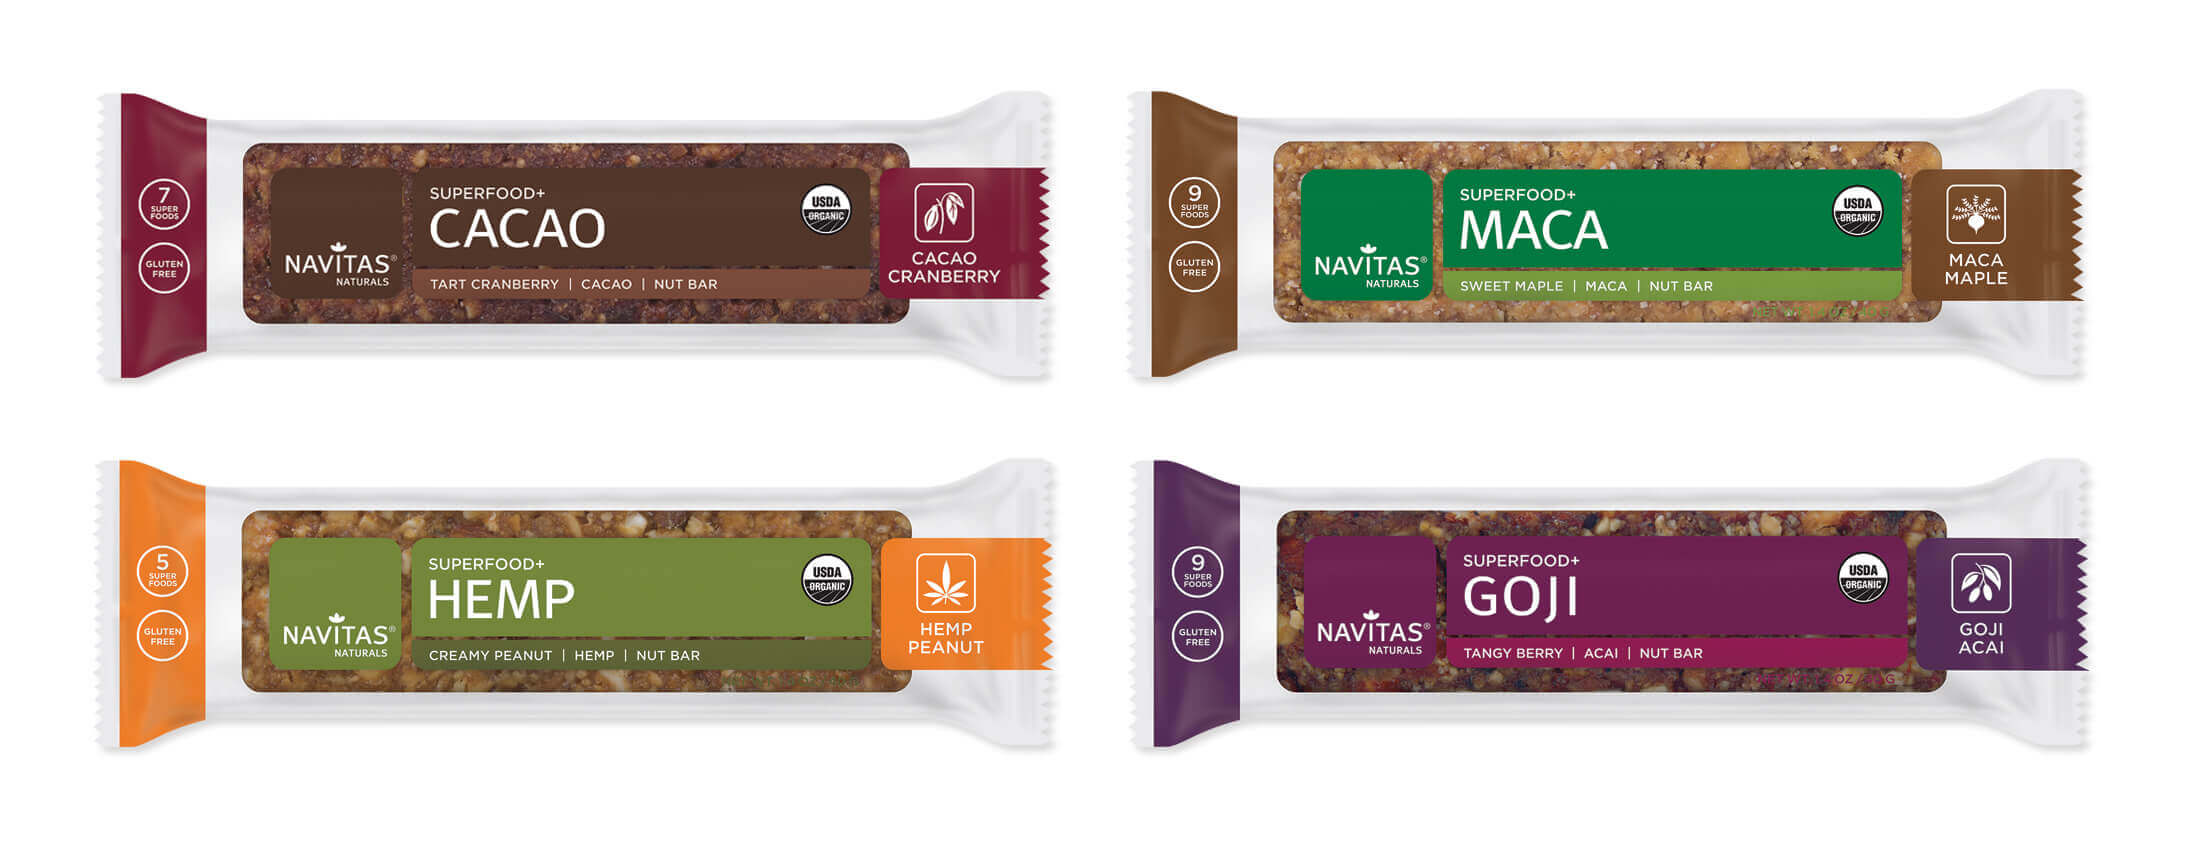 Navitas Organics Superfood+ Snack Bars